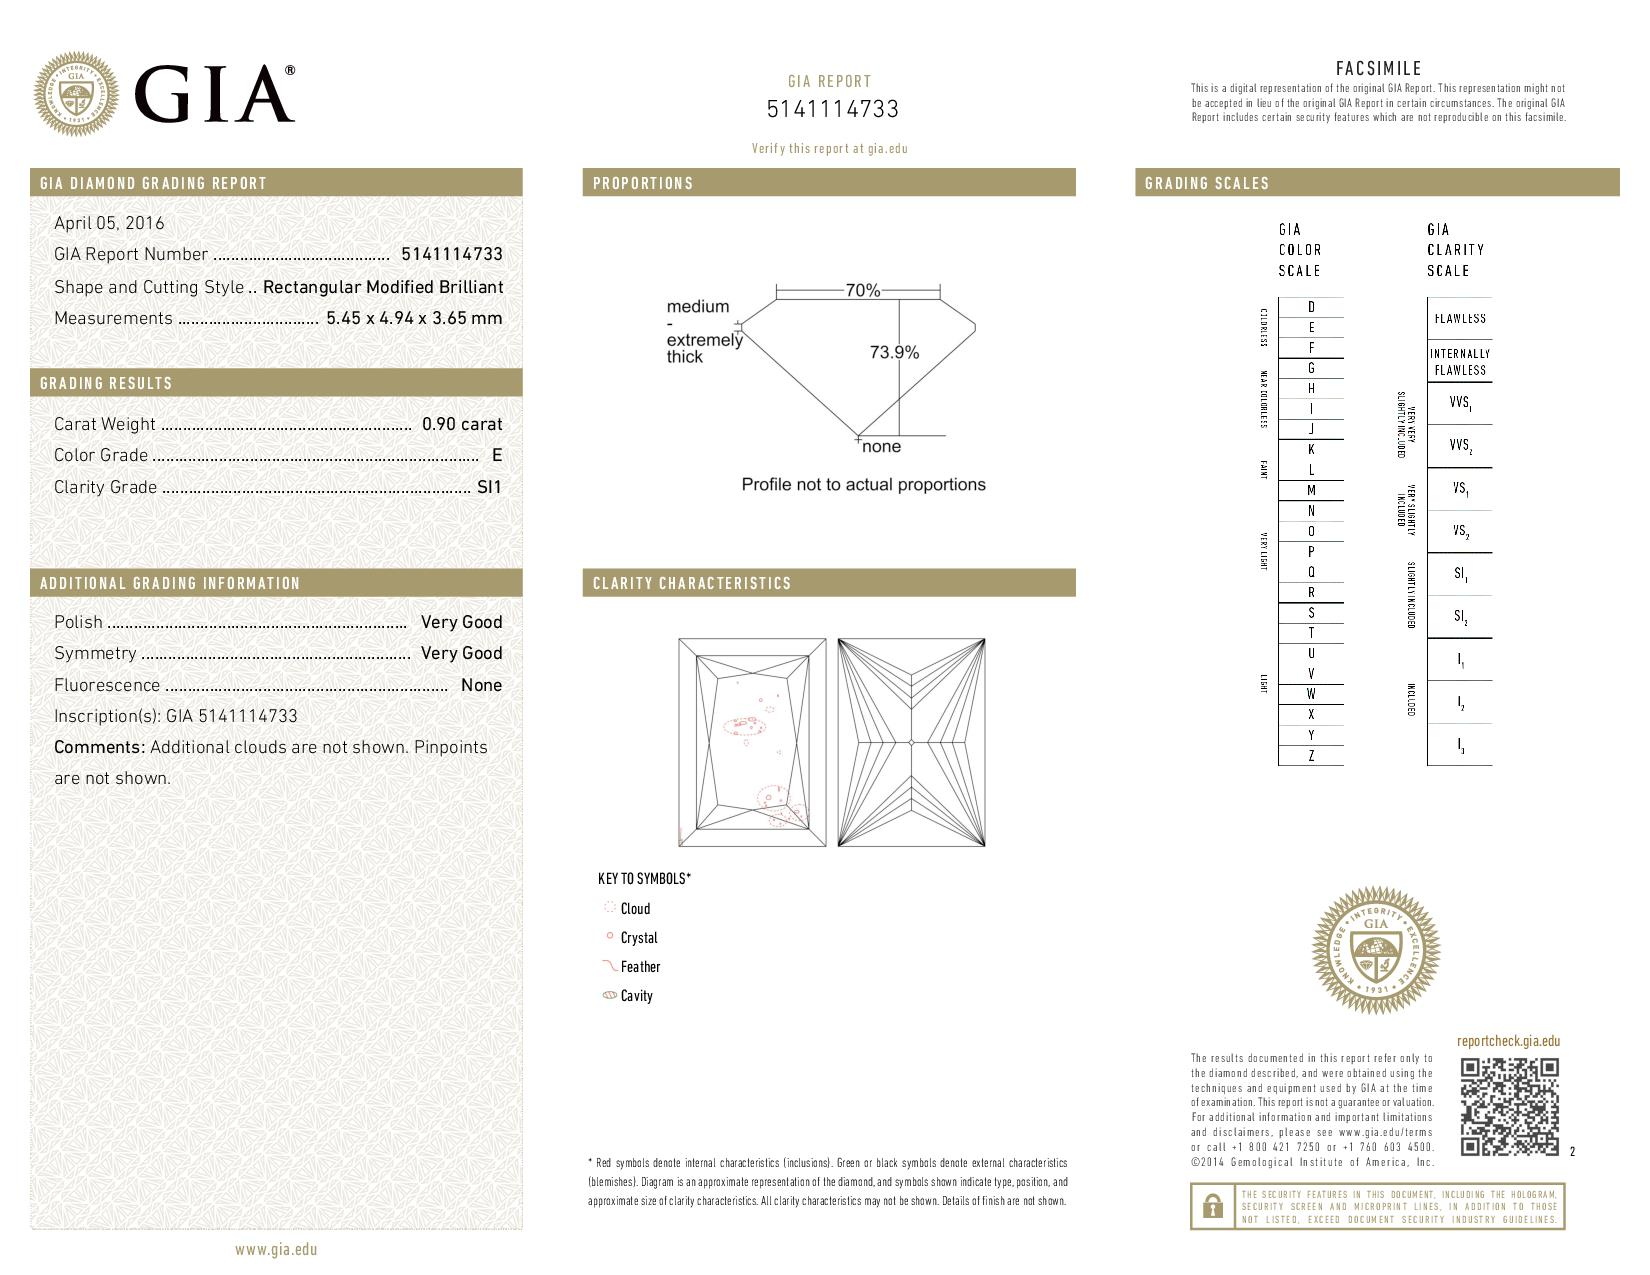 This is a 0.90 carat princess shape, E color, SI1 clarity natural diamond accompanied by a GIA grading report.